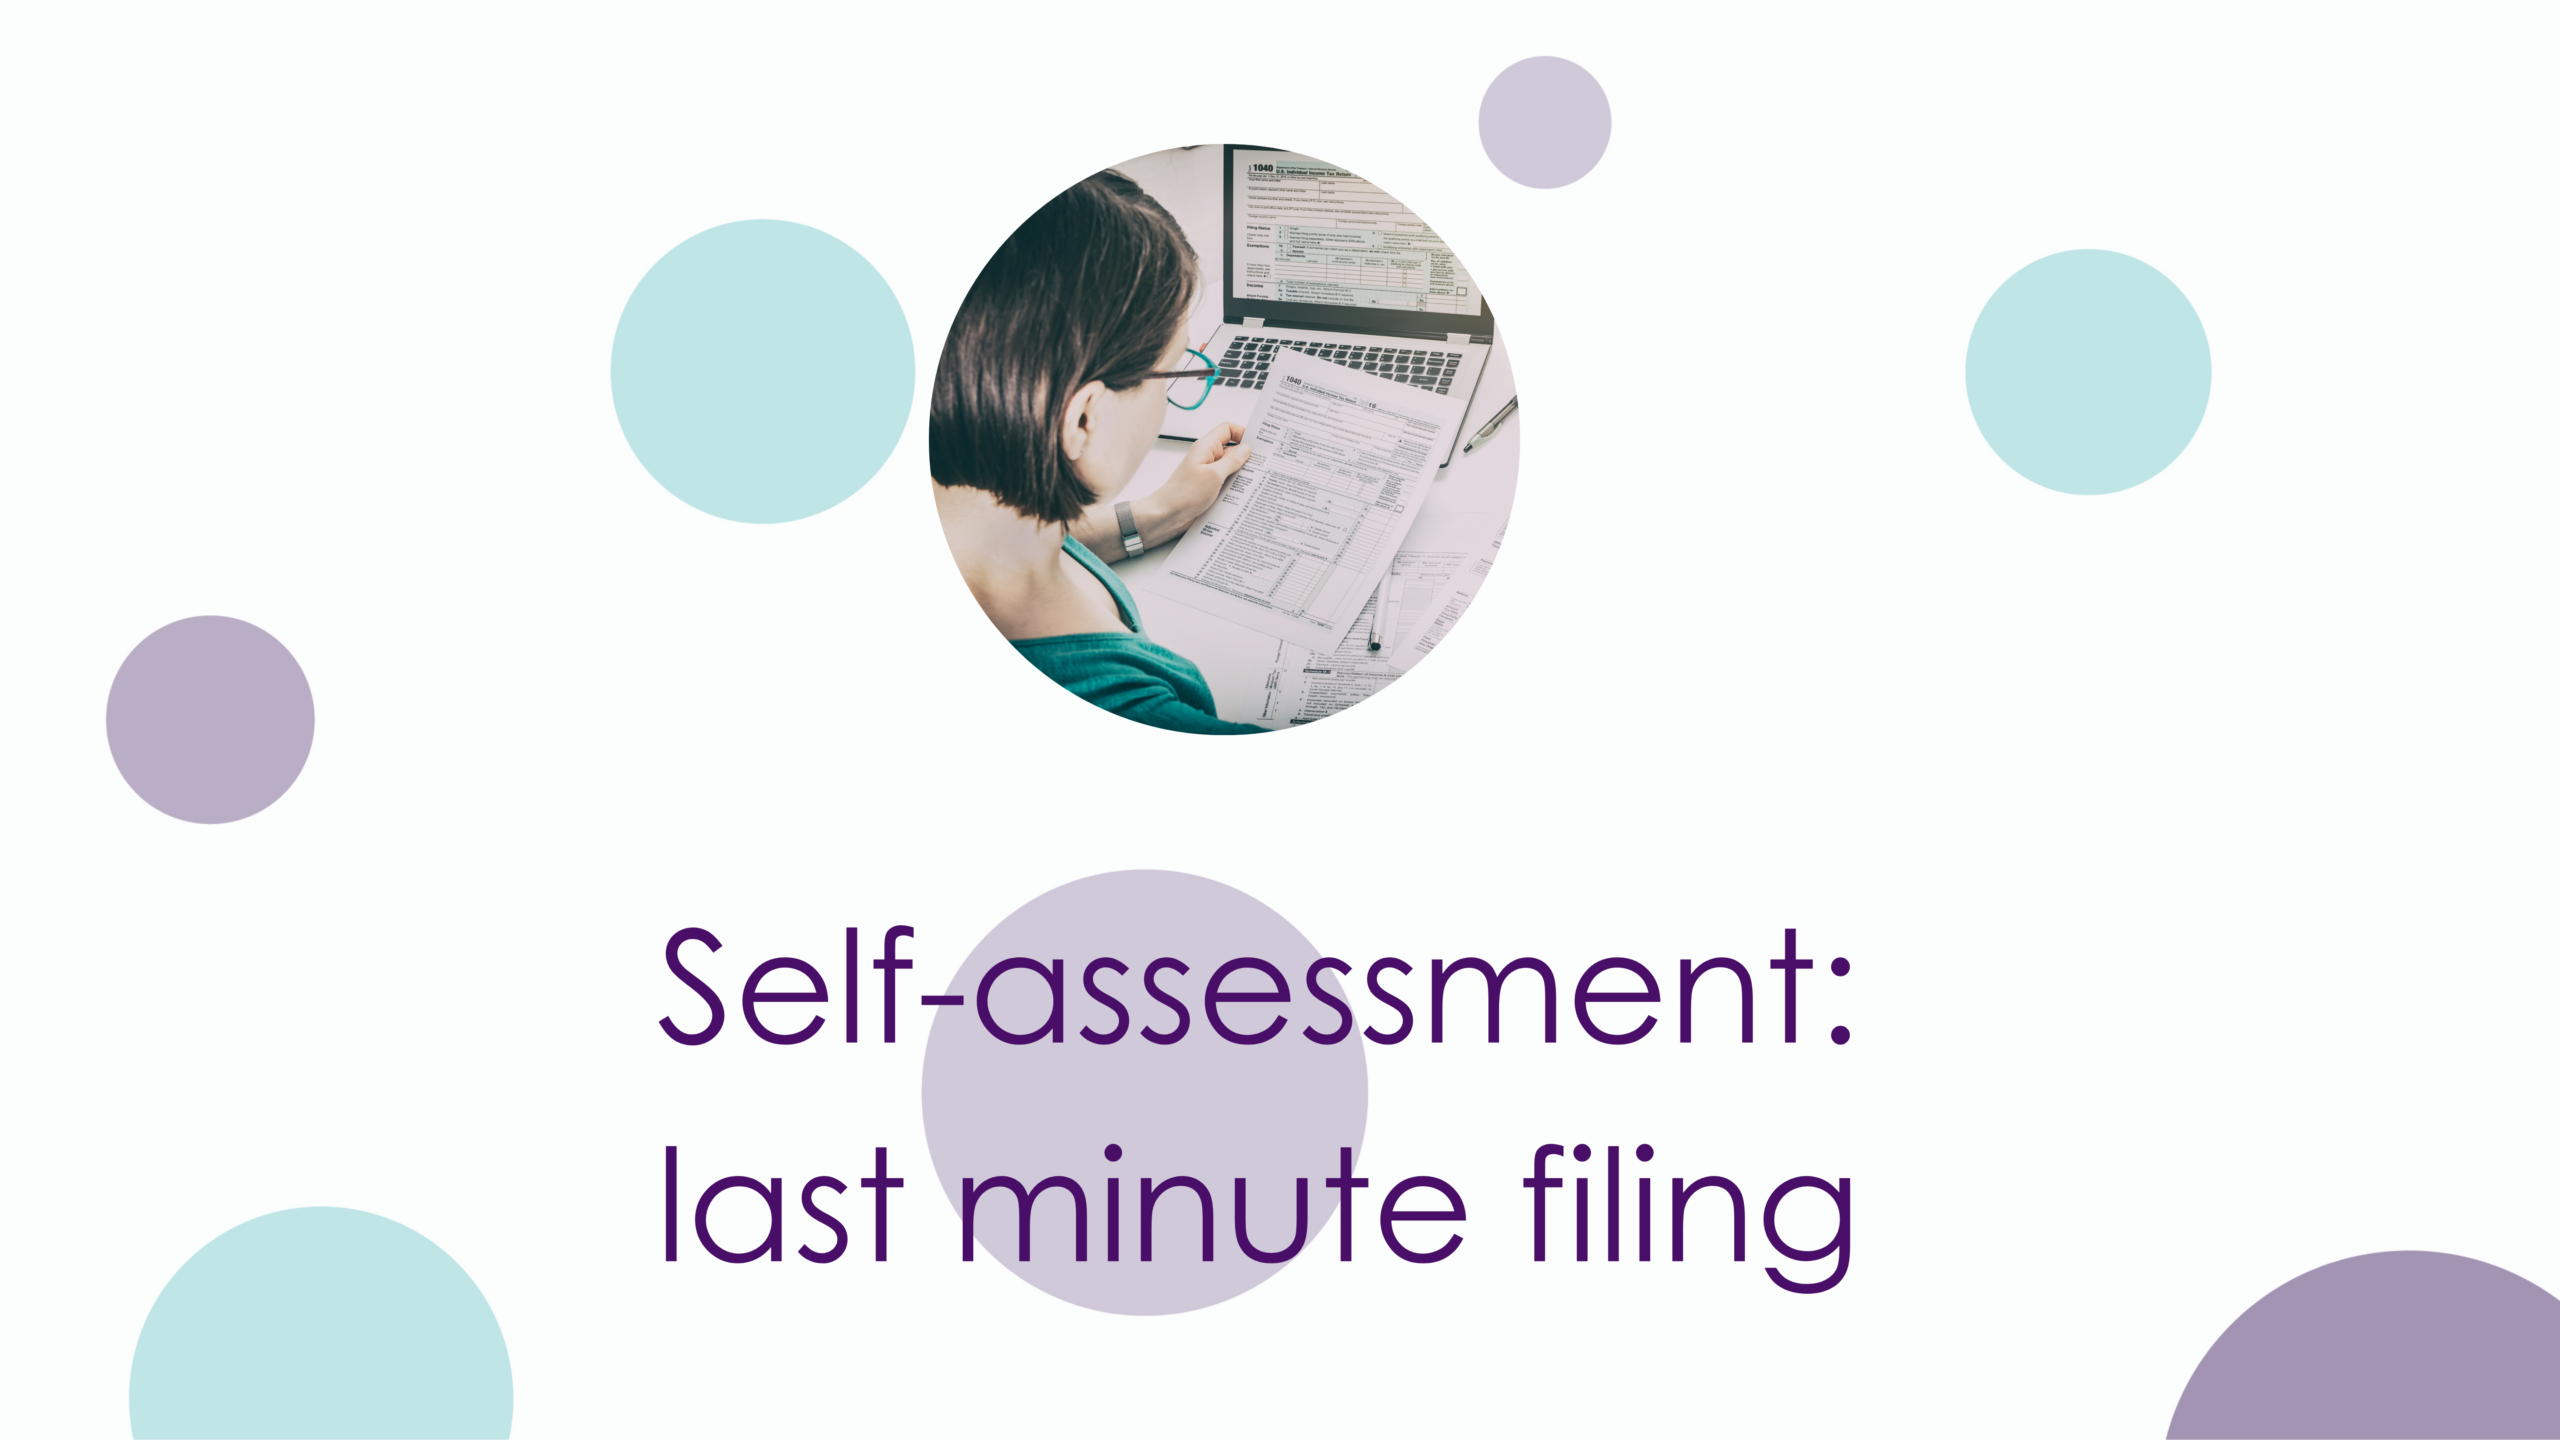 Self-assessment: what you need to know for last-minute filing